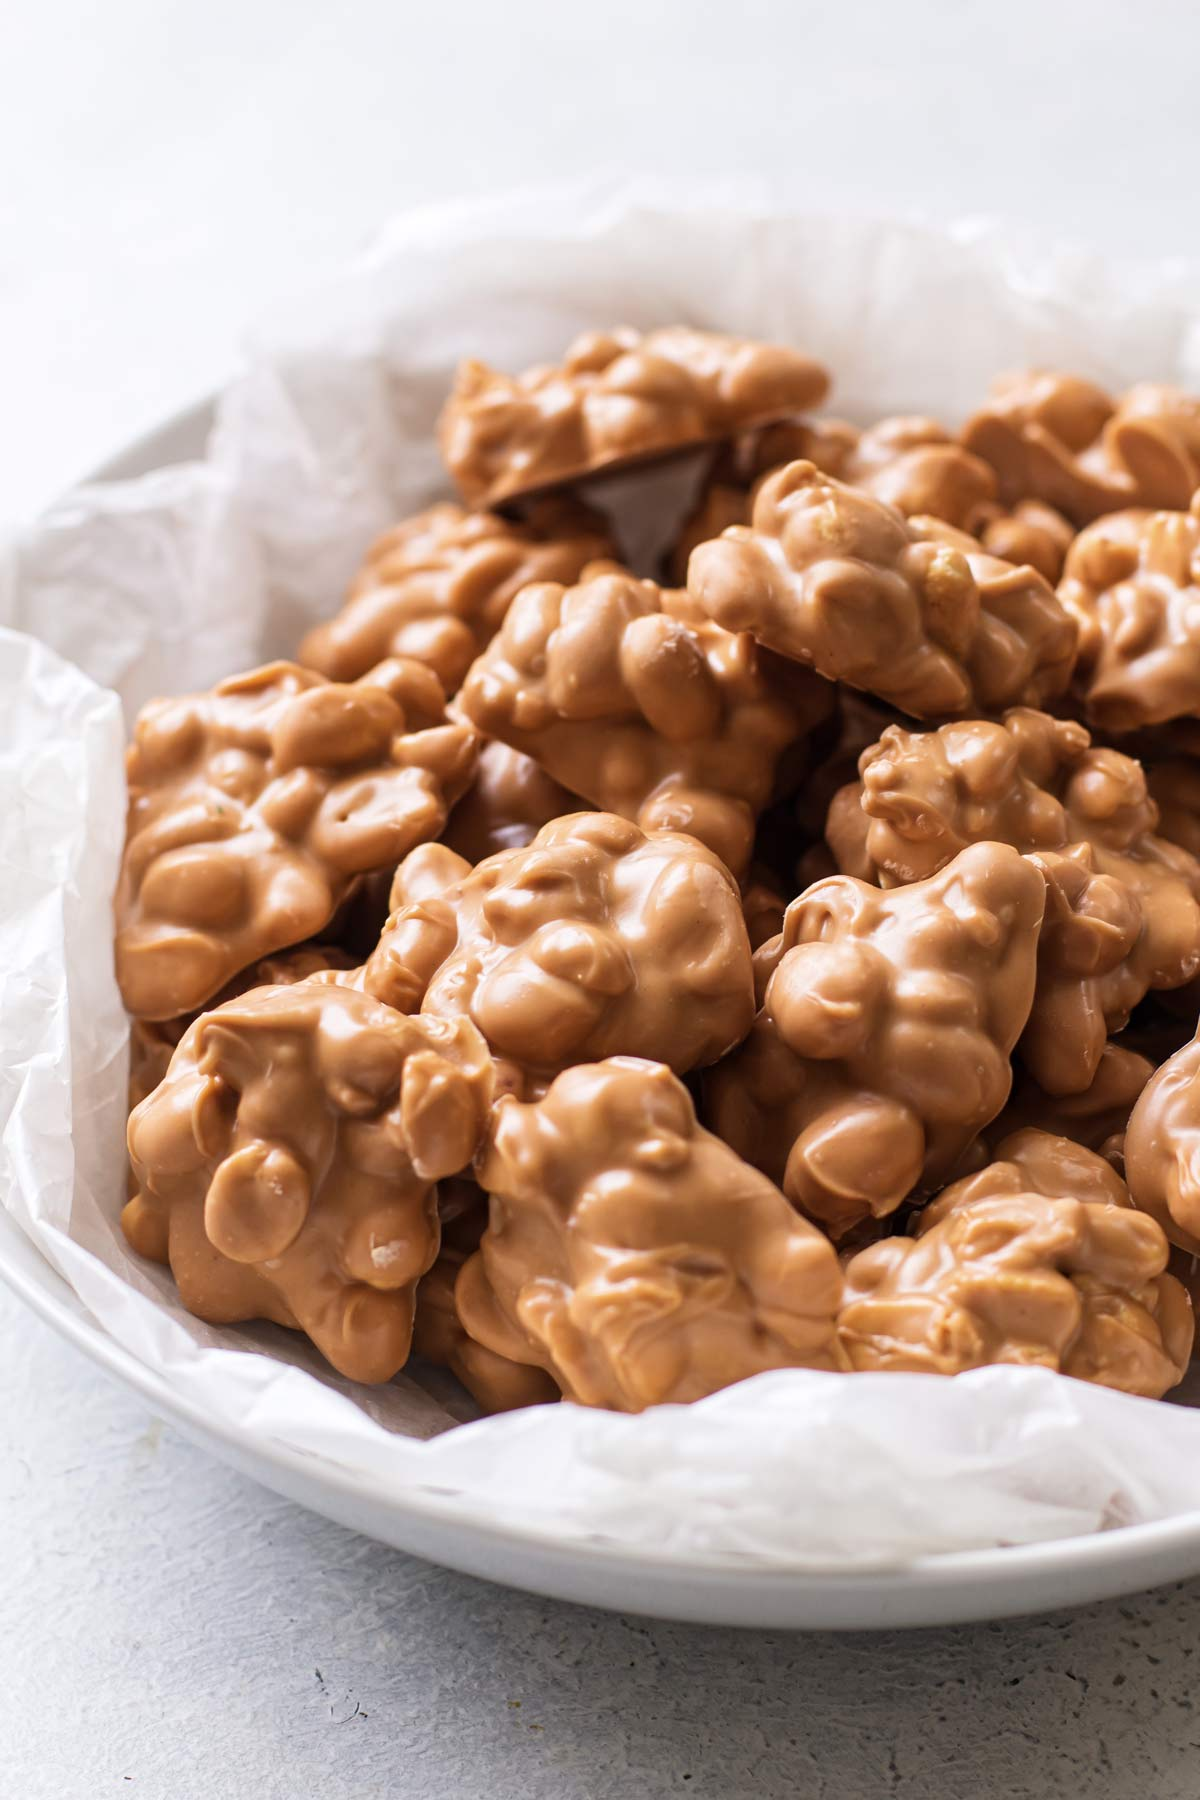 a bowl of nut clusters.